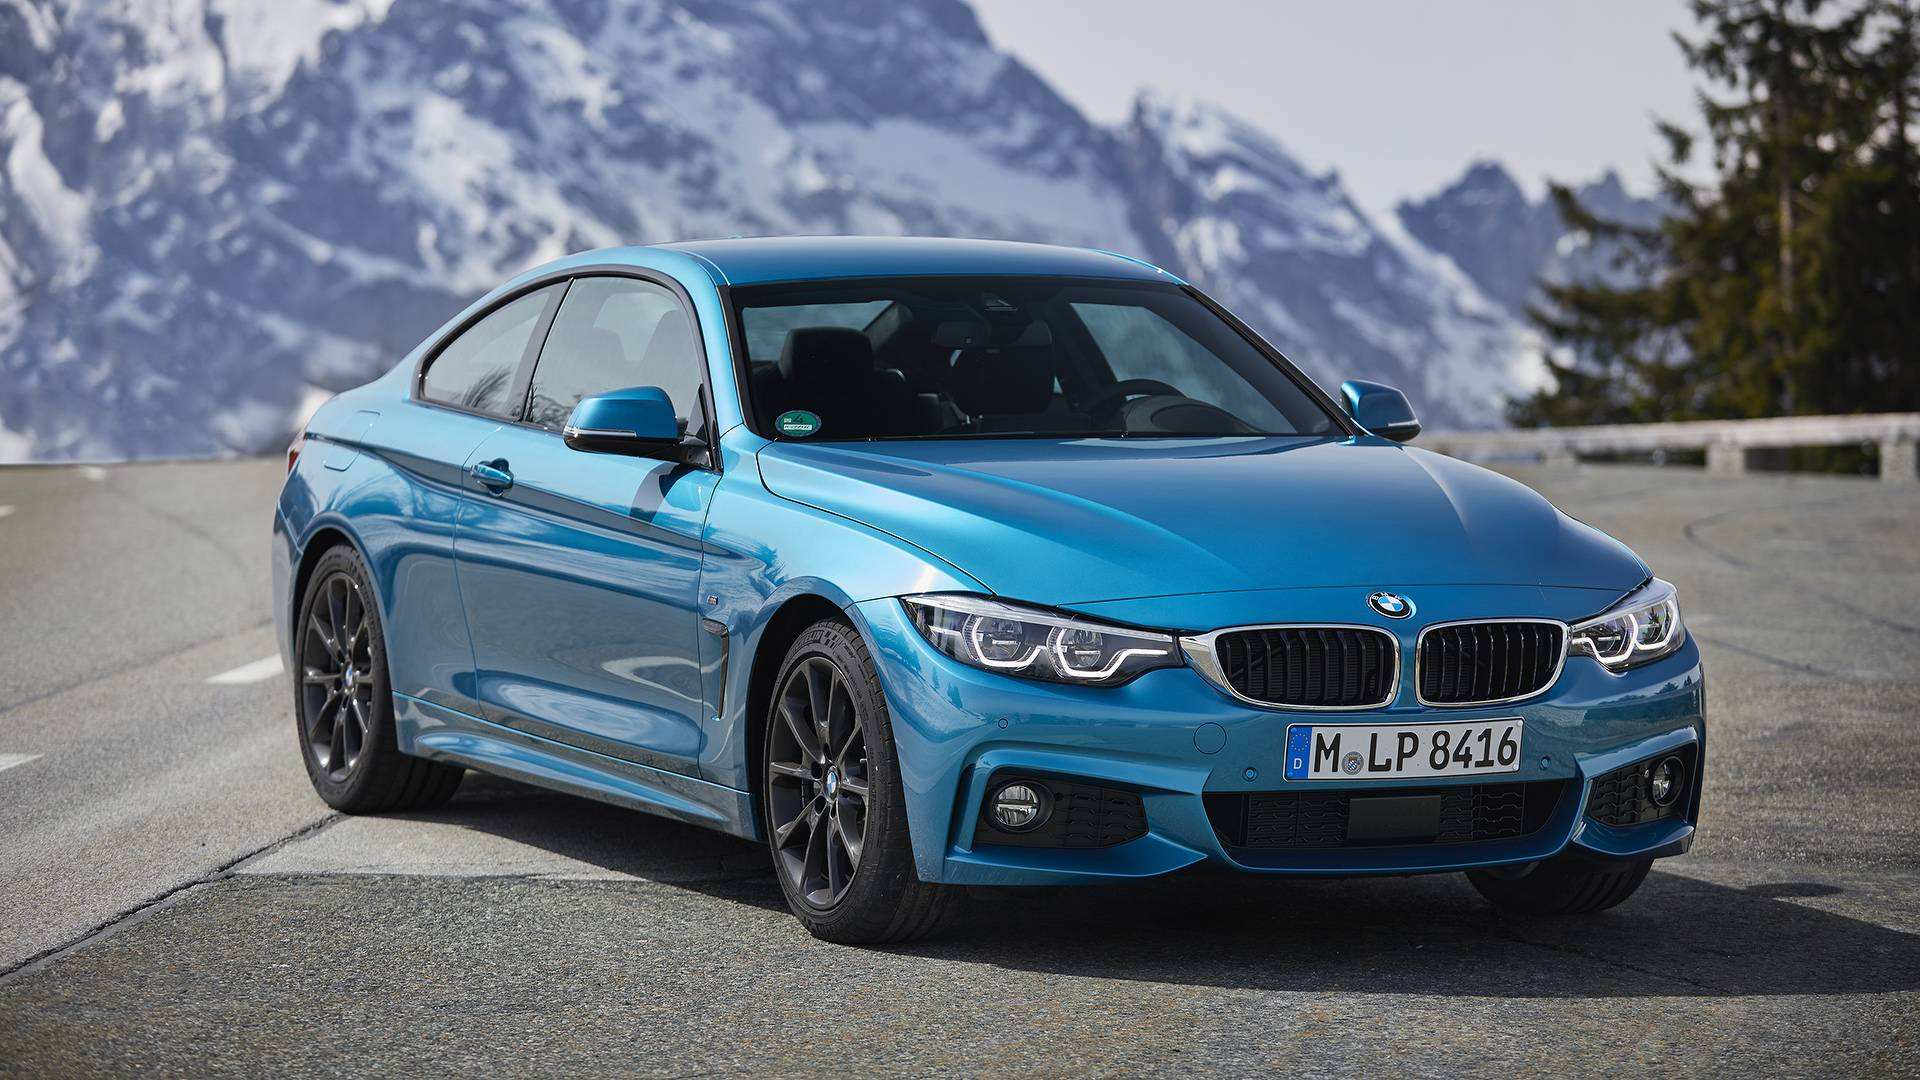 72 New 2019 Bmw 4 Series Release Date Release by 2019 Bmw 4 Series Release Date